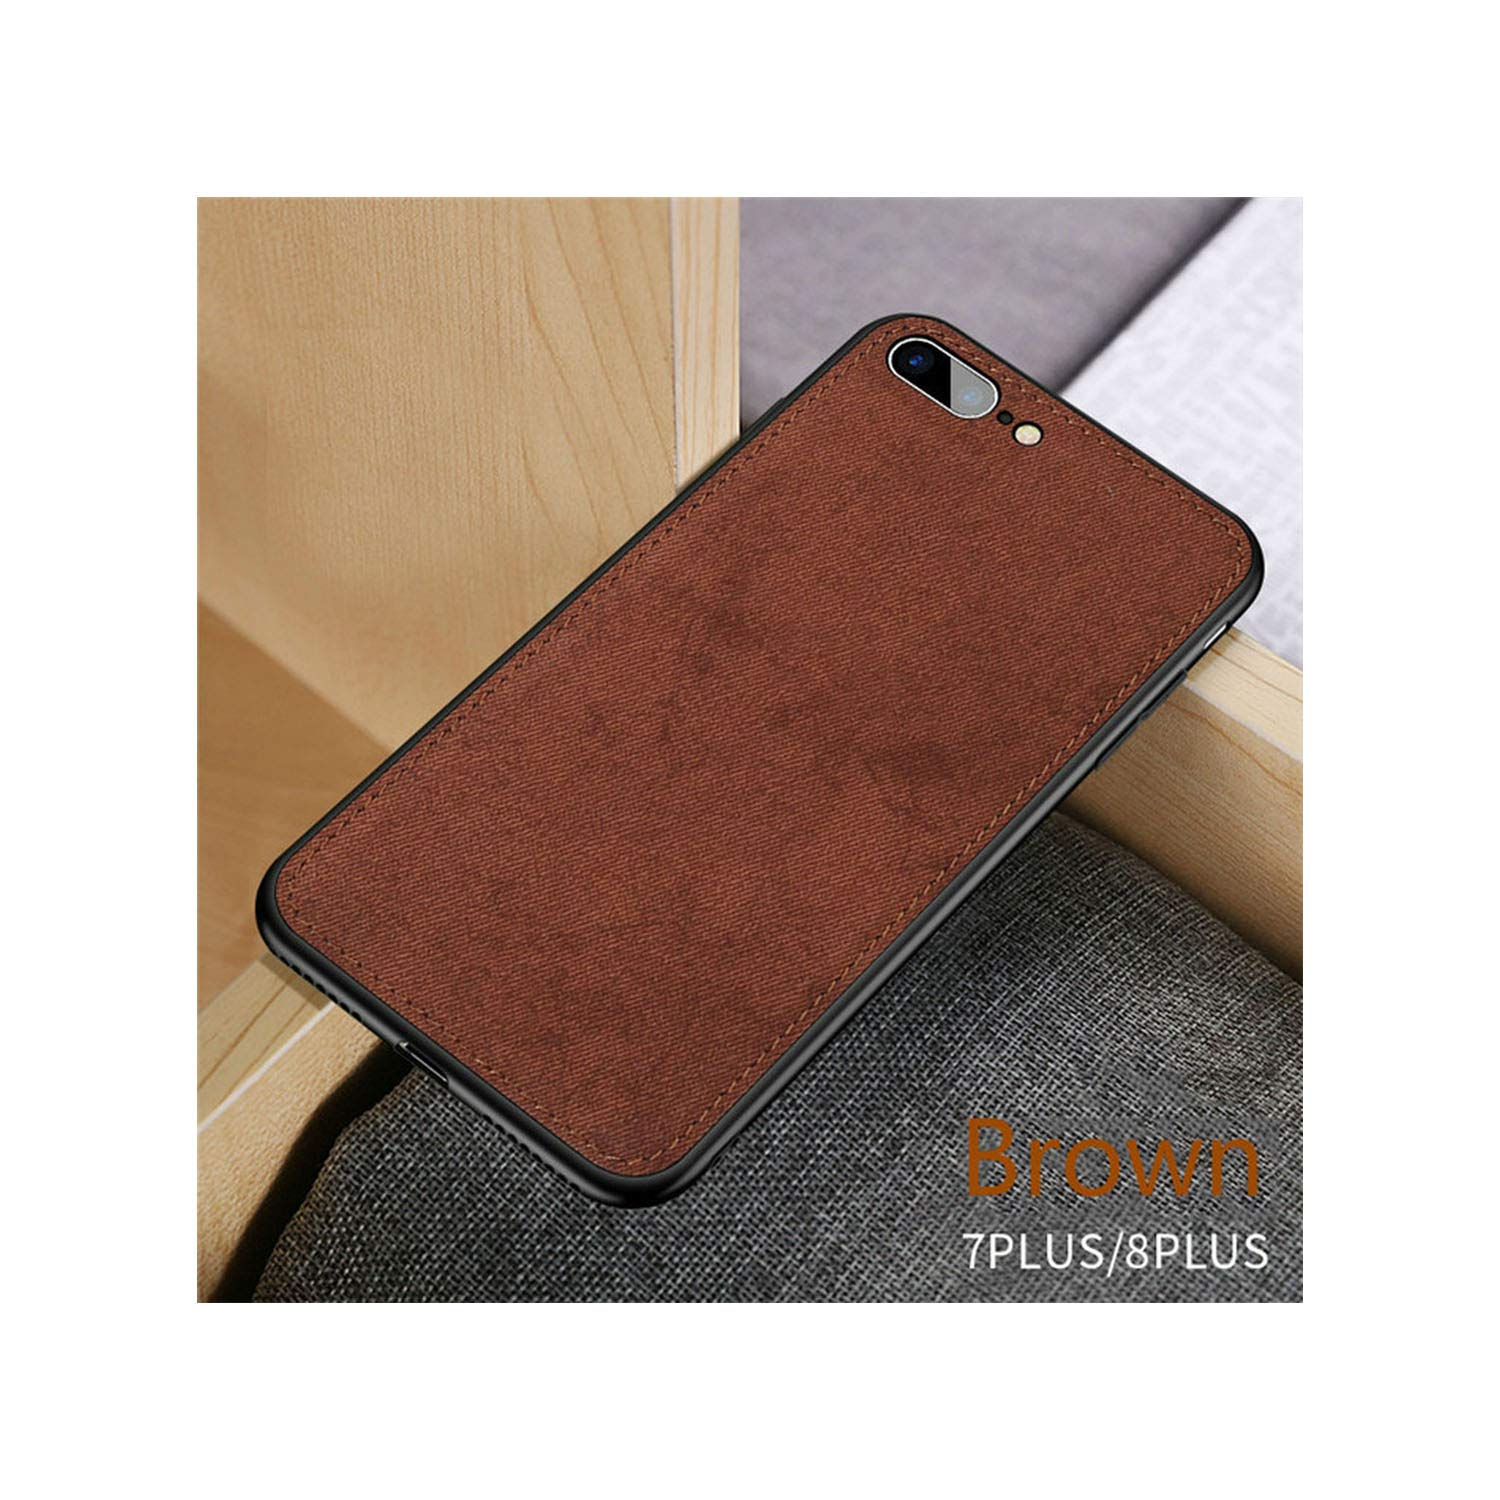 Amazon.com: Fabric Ultra Thin Silicon Phone Case for iPhone ...